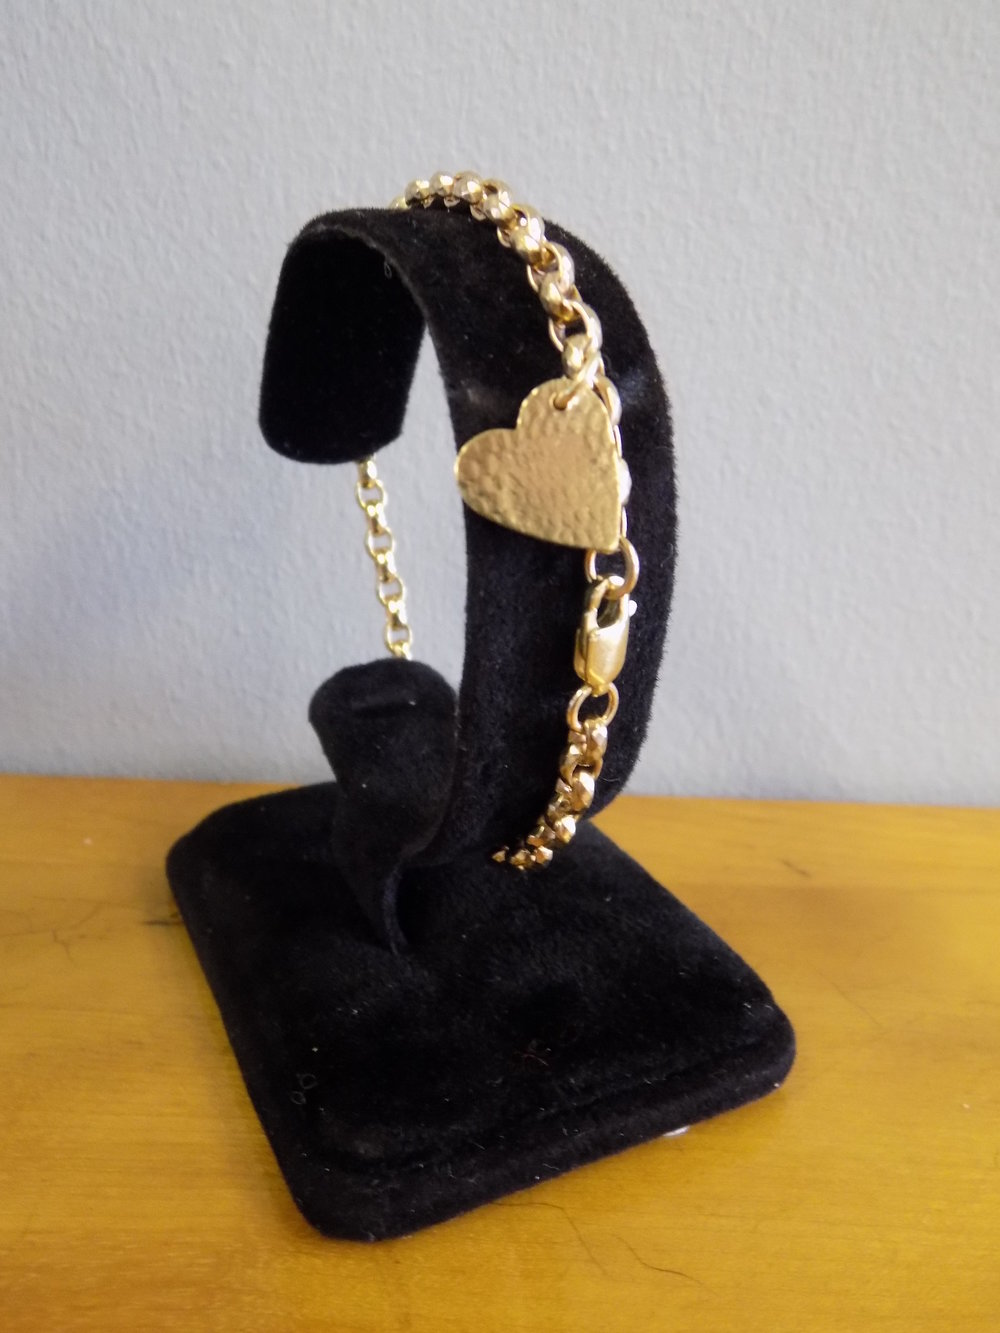 Victorian 9ct gold bracelet with 18ct handmade heart shaped charm £195.00